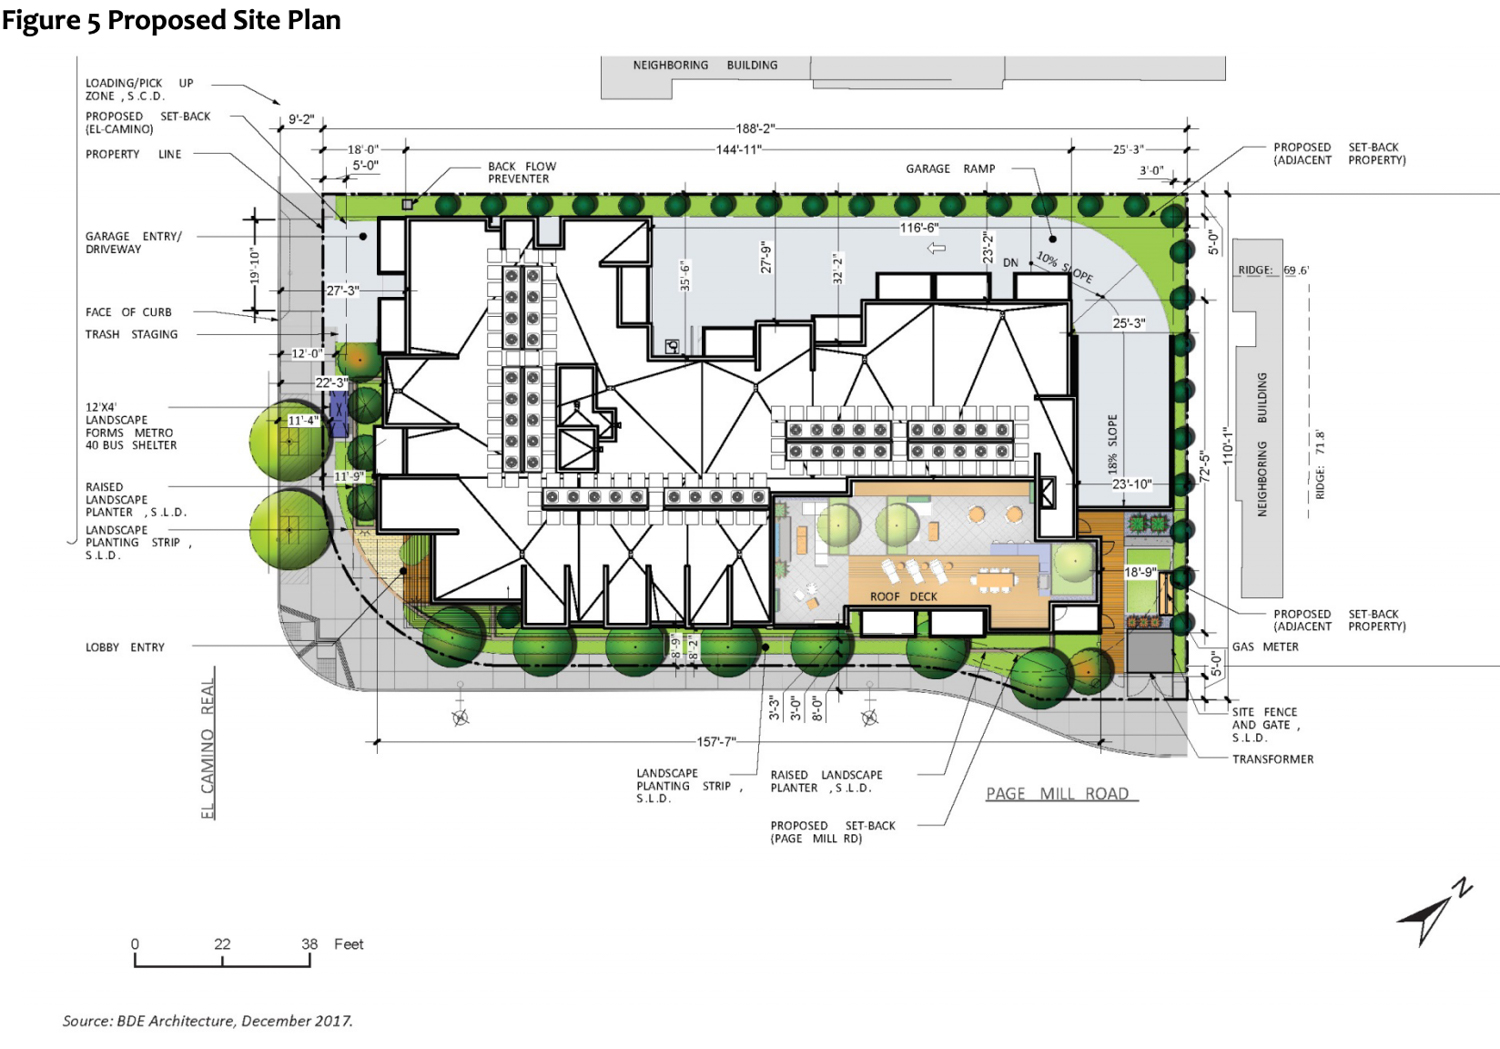 2755 El Camino Real proposed site plan, drawing by BDE Architecture